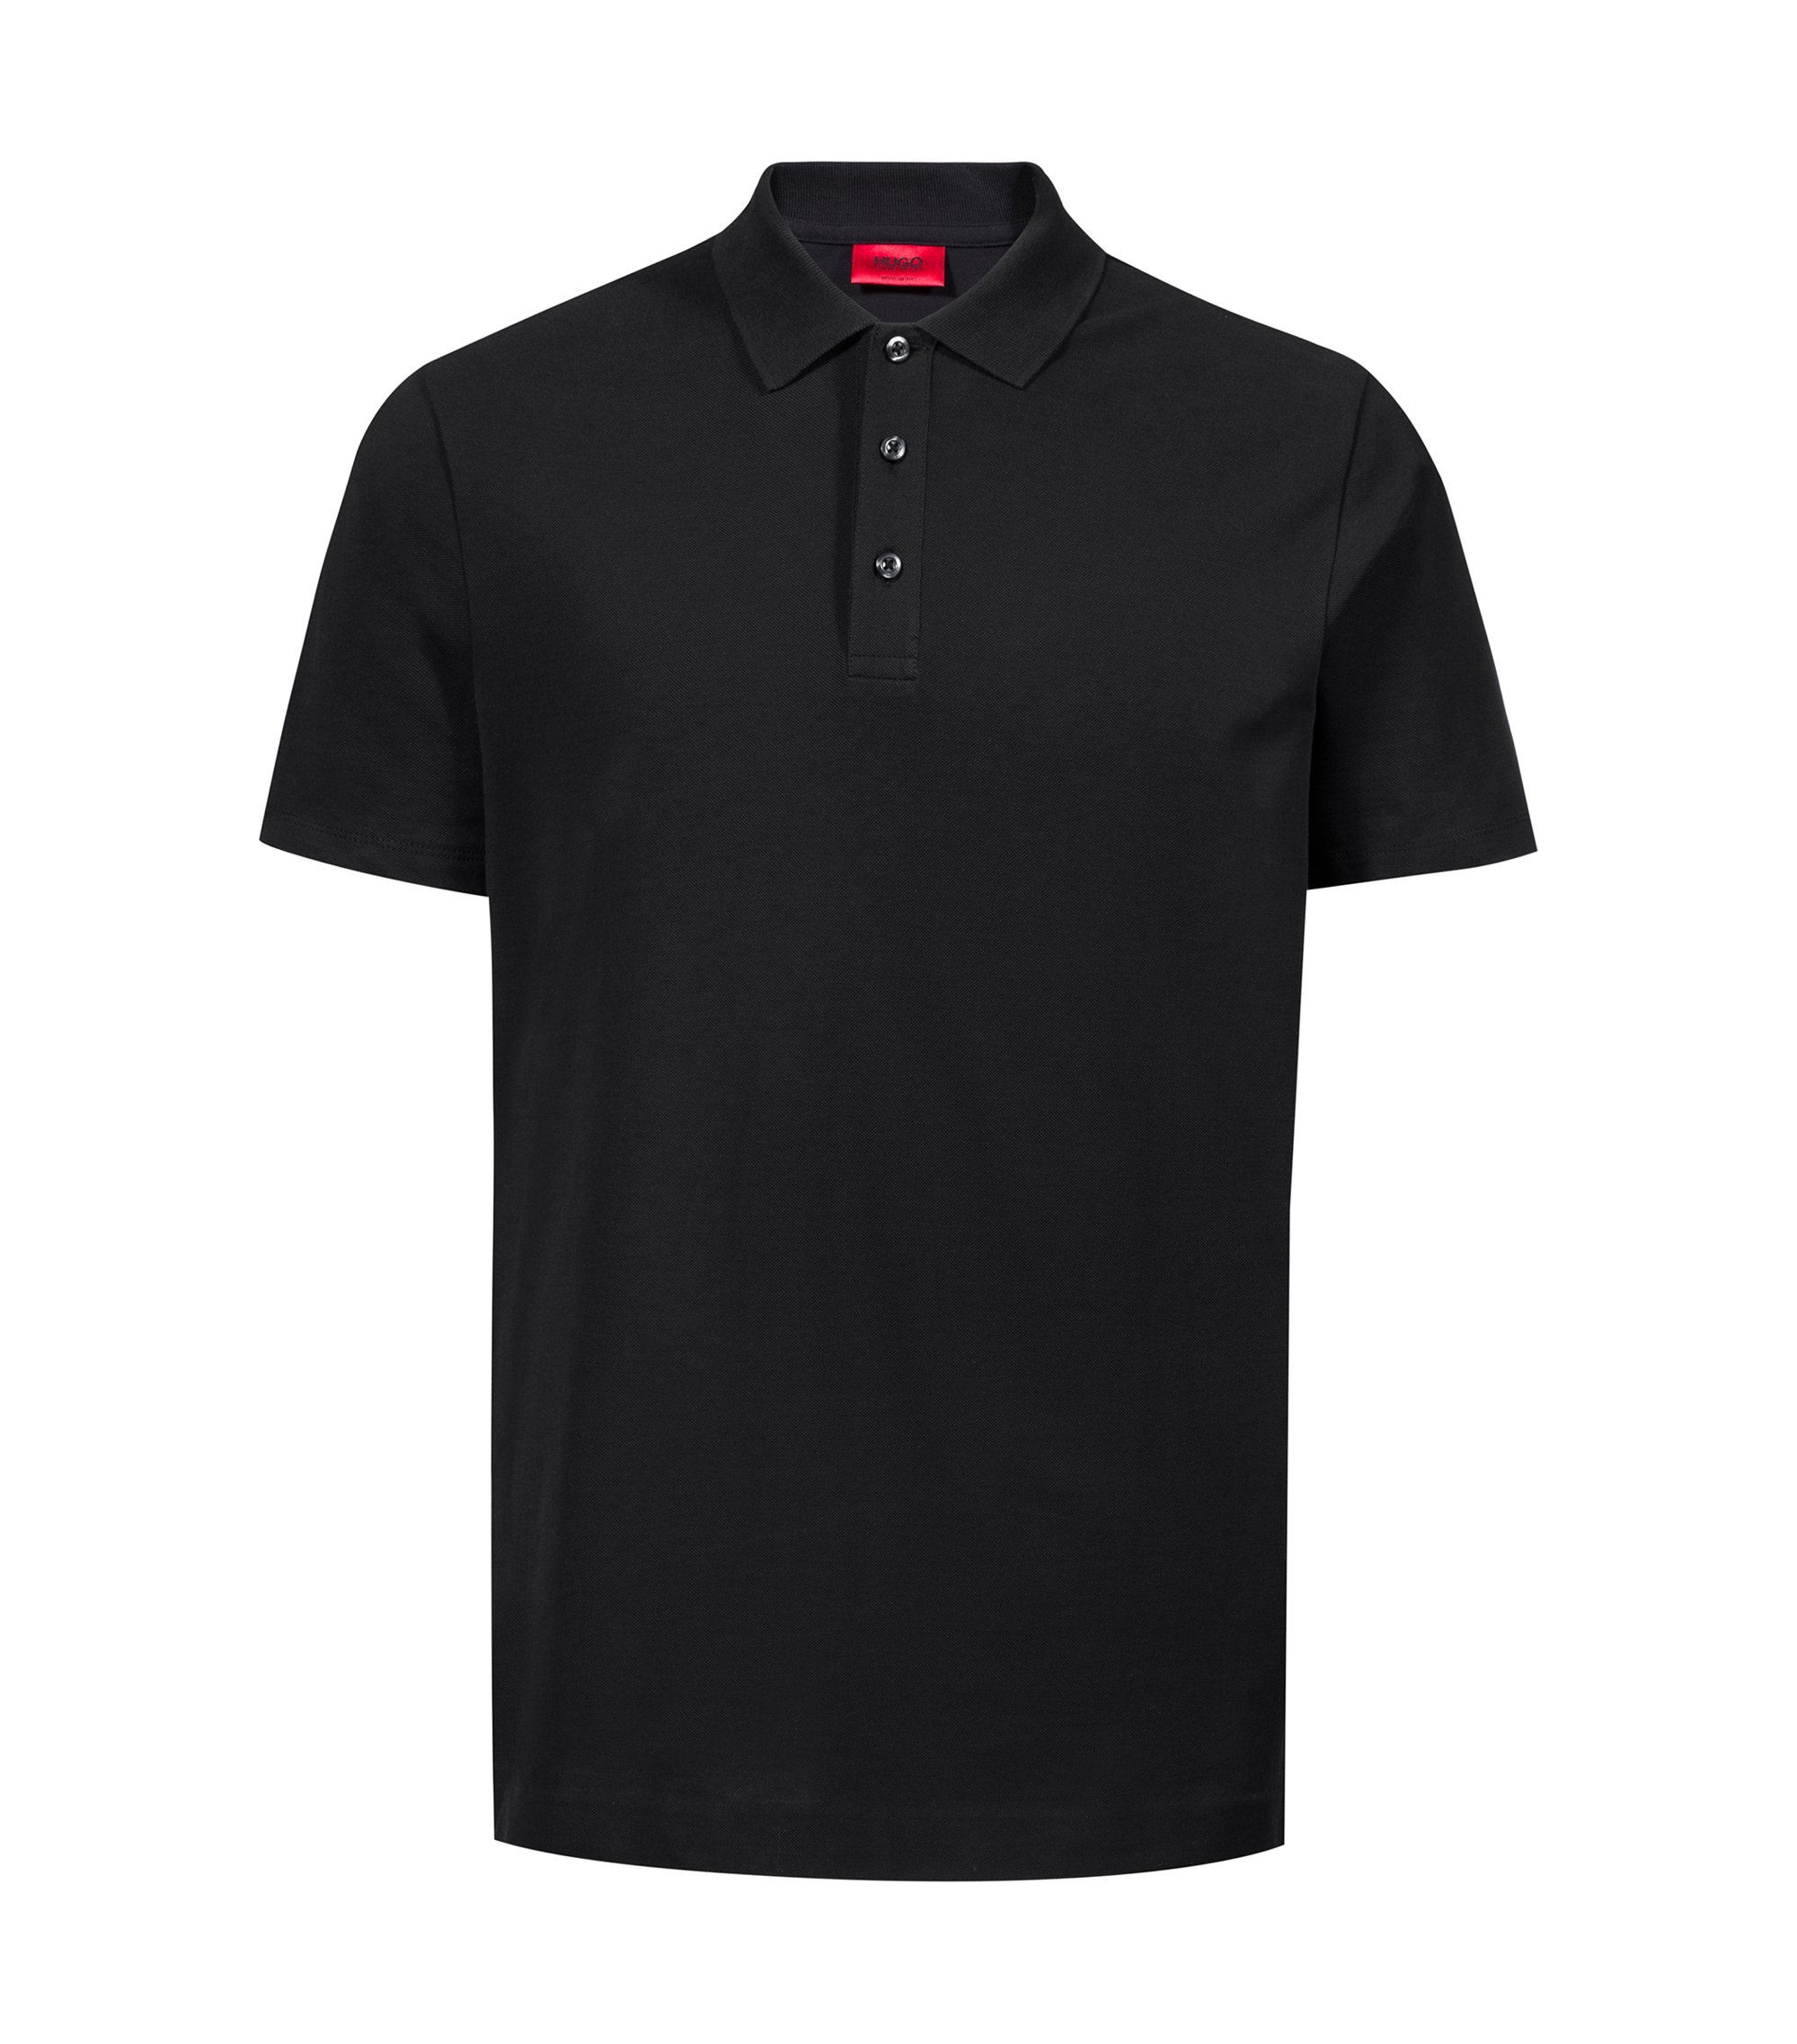 Cotton-piqué polo shirt with large-scale rear logo, Black